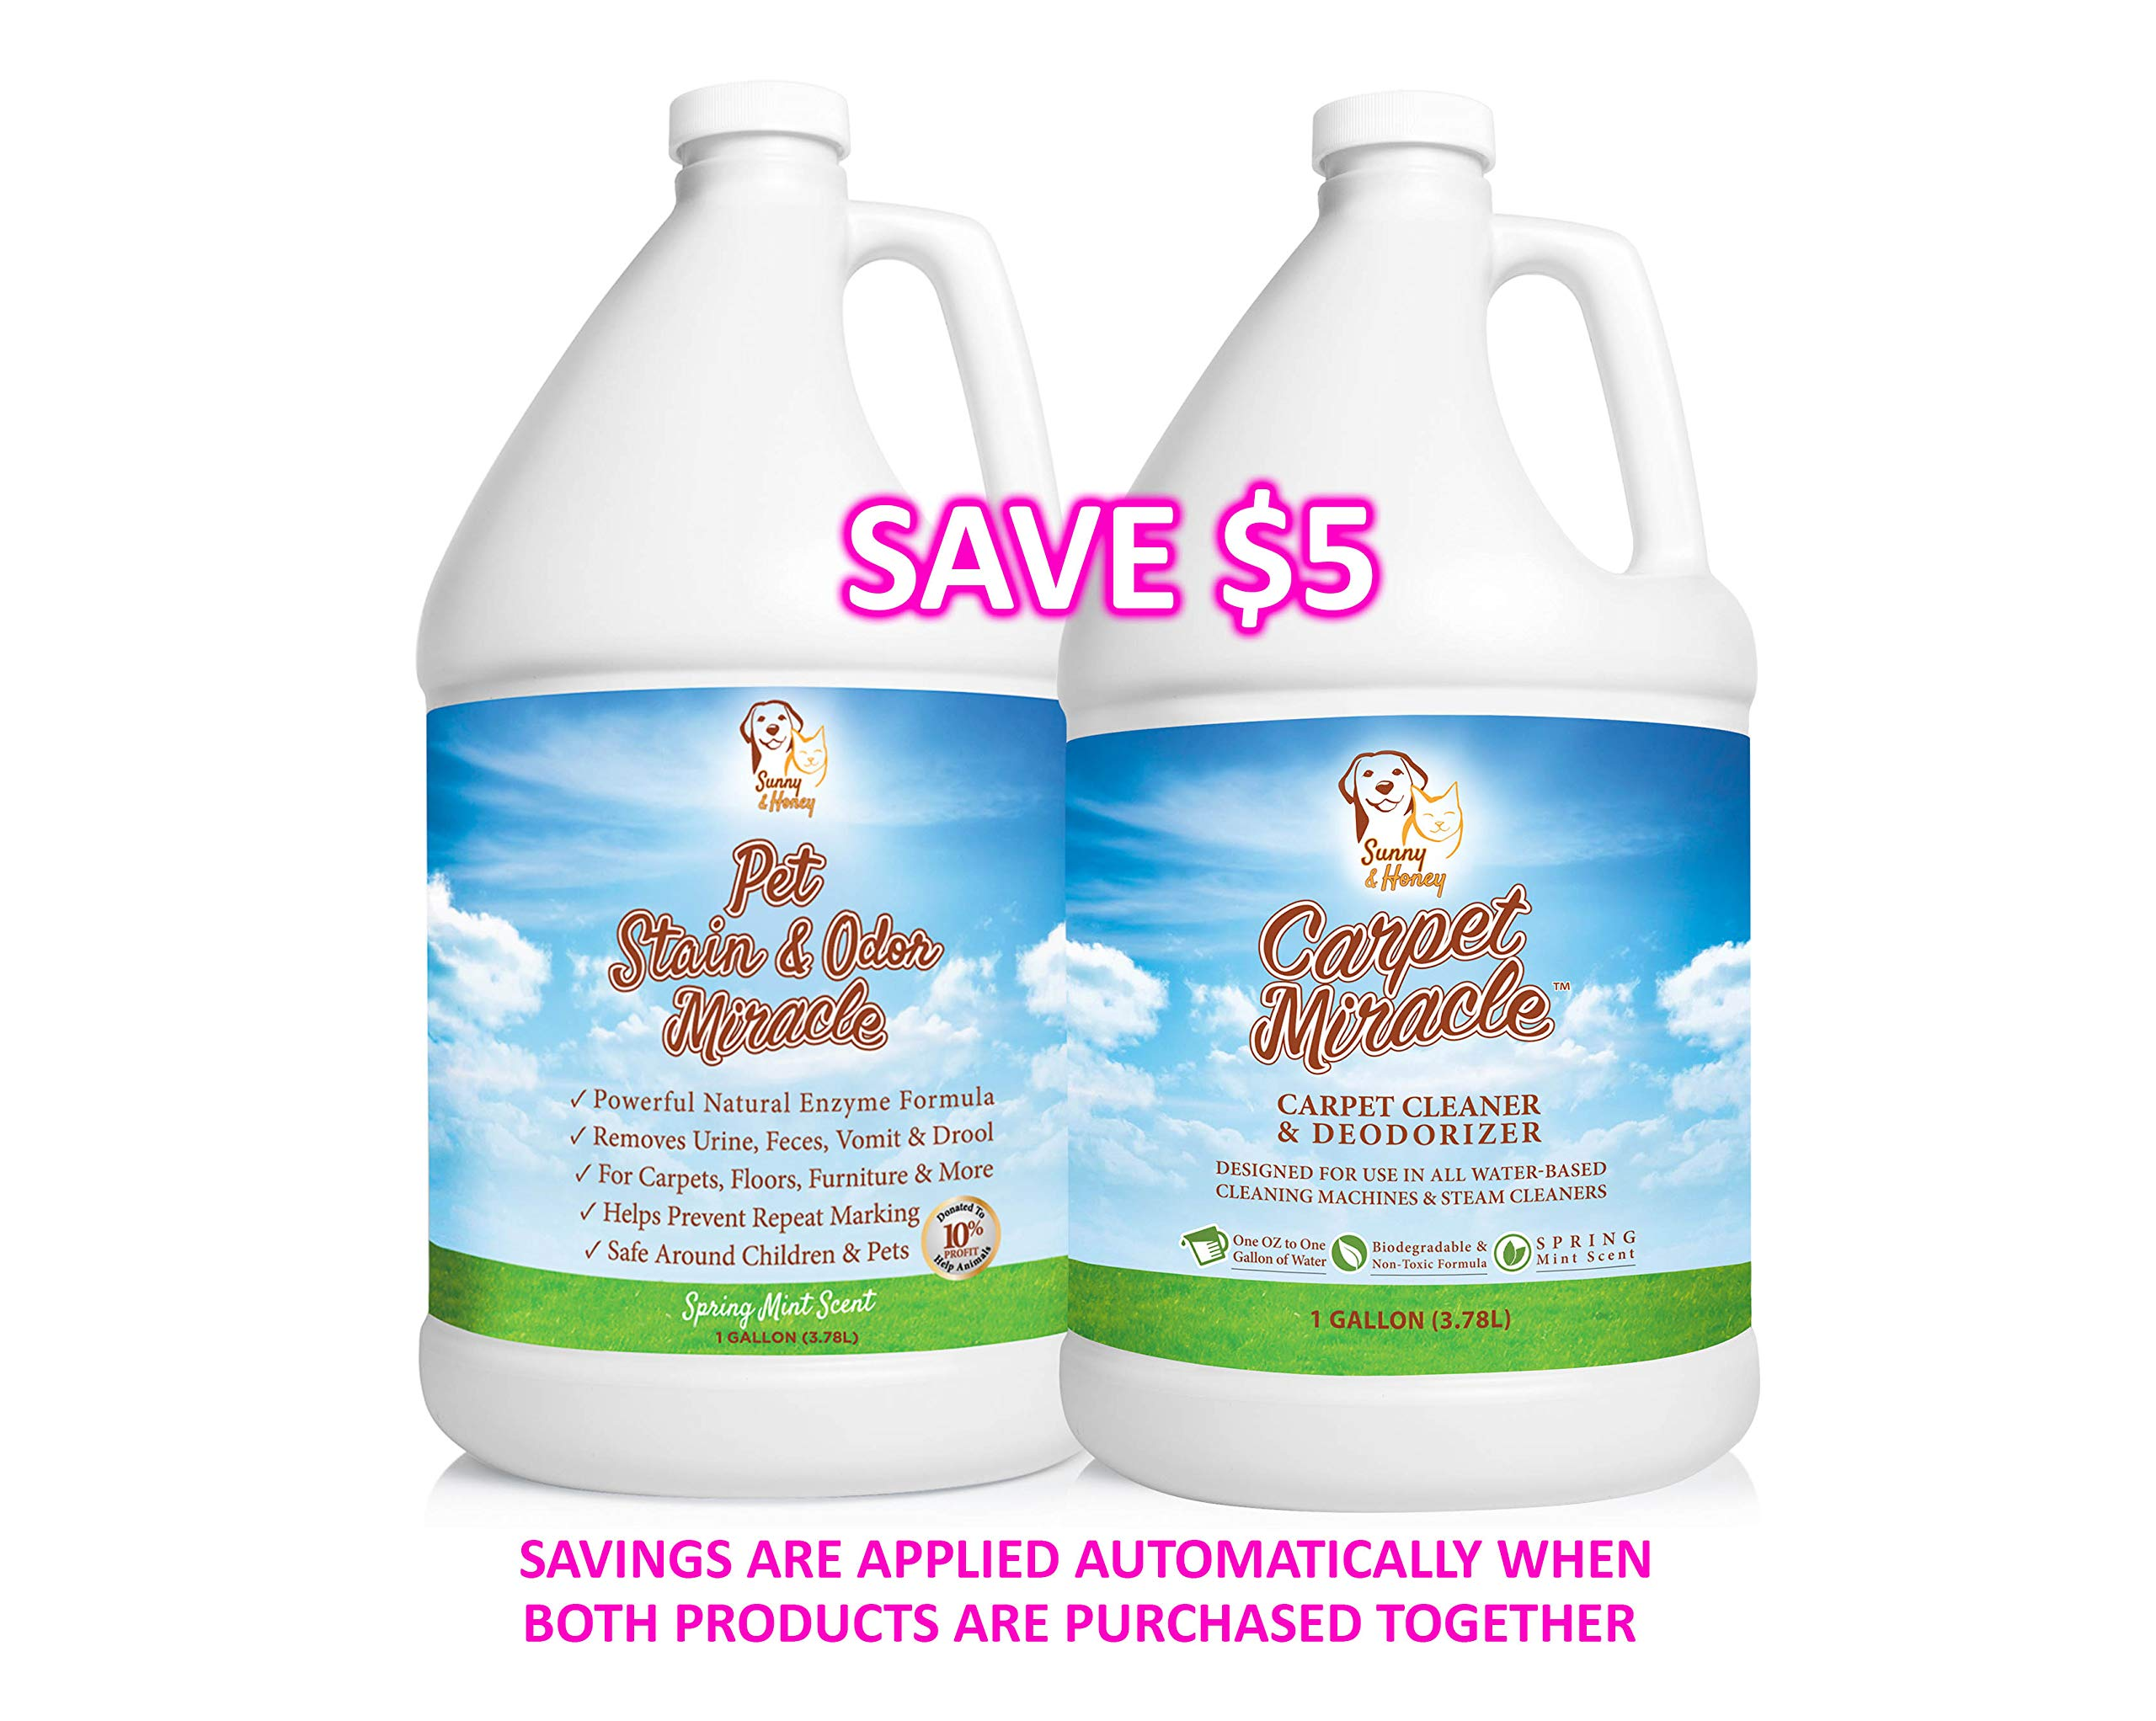 Carpet Miracle - Concentrated Machine Shampoo, Deep Stain and Odor Remover Solution, Deodorizing Formula (1 Gallon) by Sunny & Honey (Image #7)